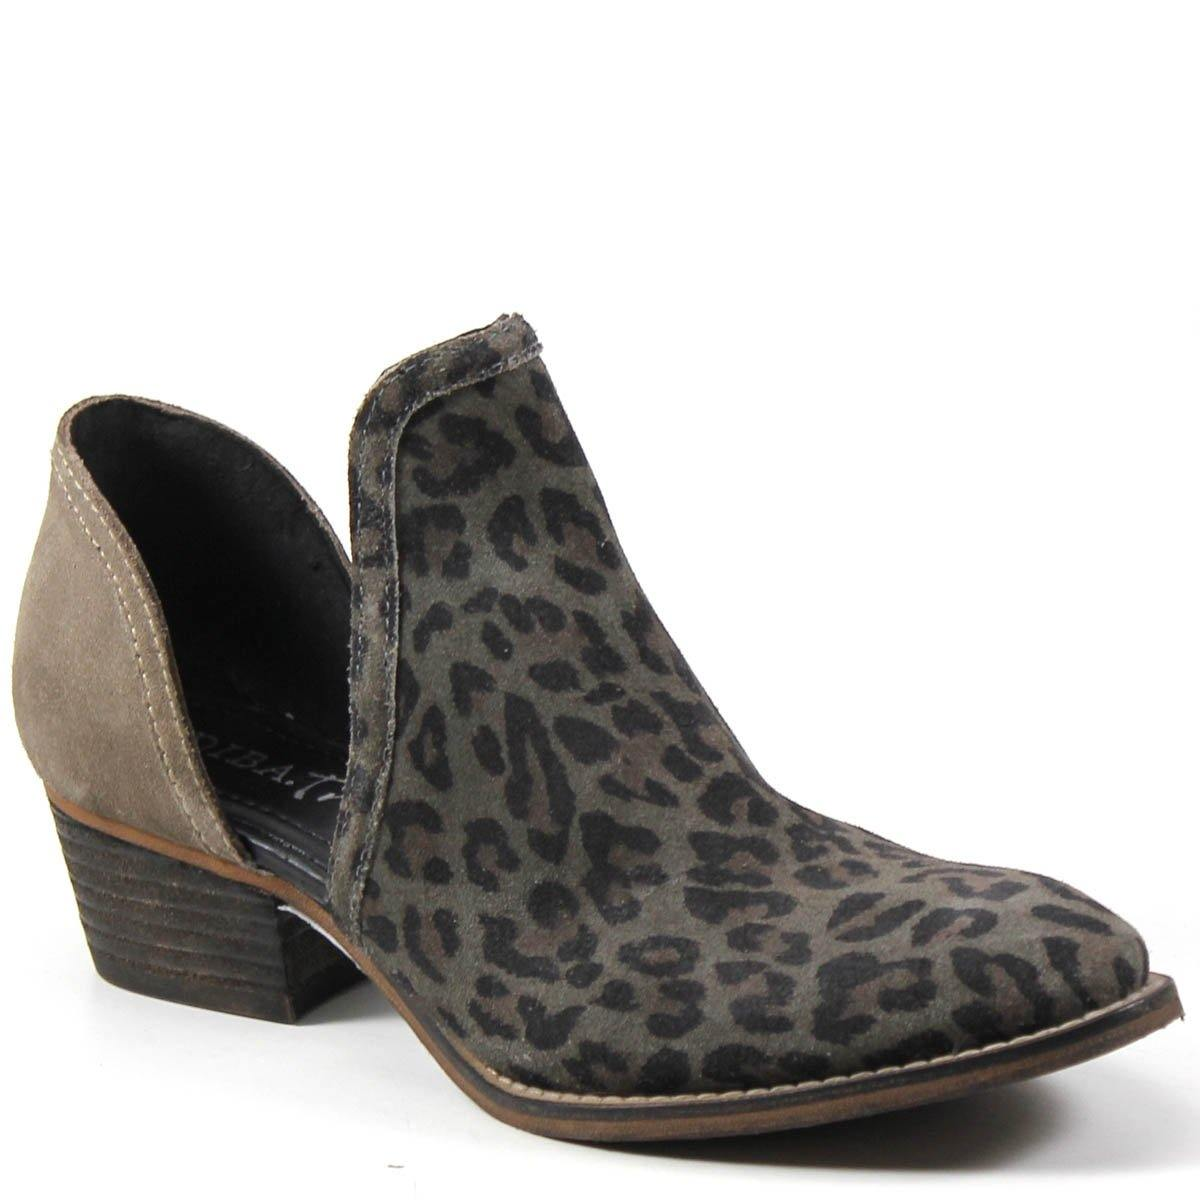 Diba True Women's Shy Town V Cut Shoe Gray Leopard Printed Suede